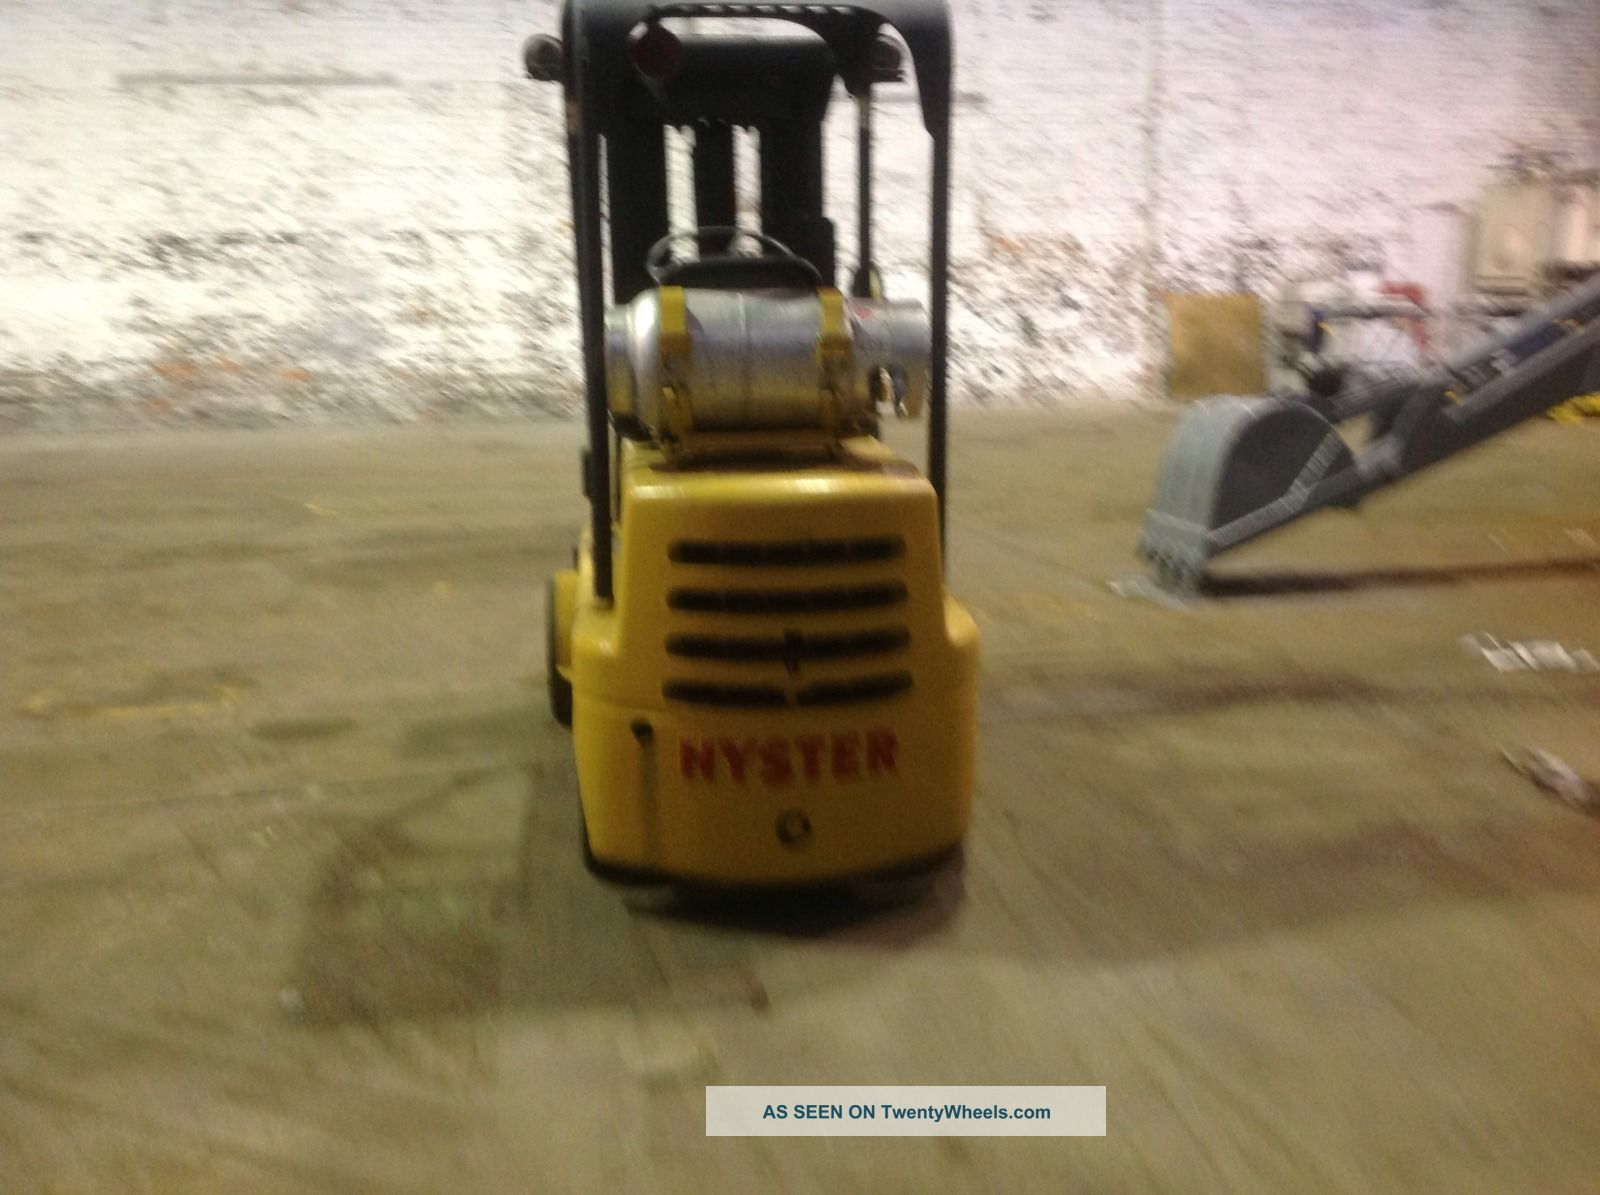 Hyster H50 Forklift Wiring Diagram Images Of Home Design For 50 Hydraulic